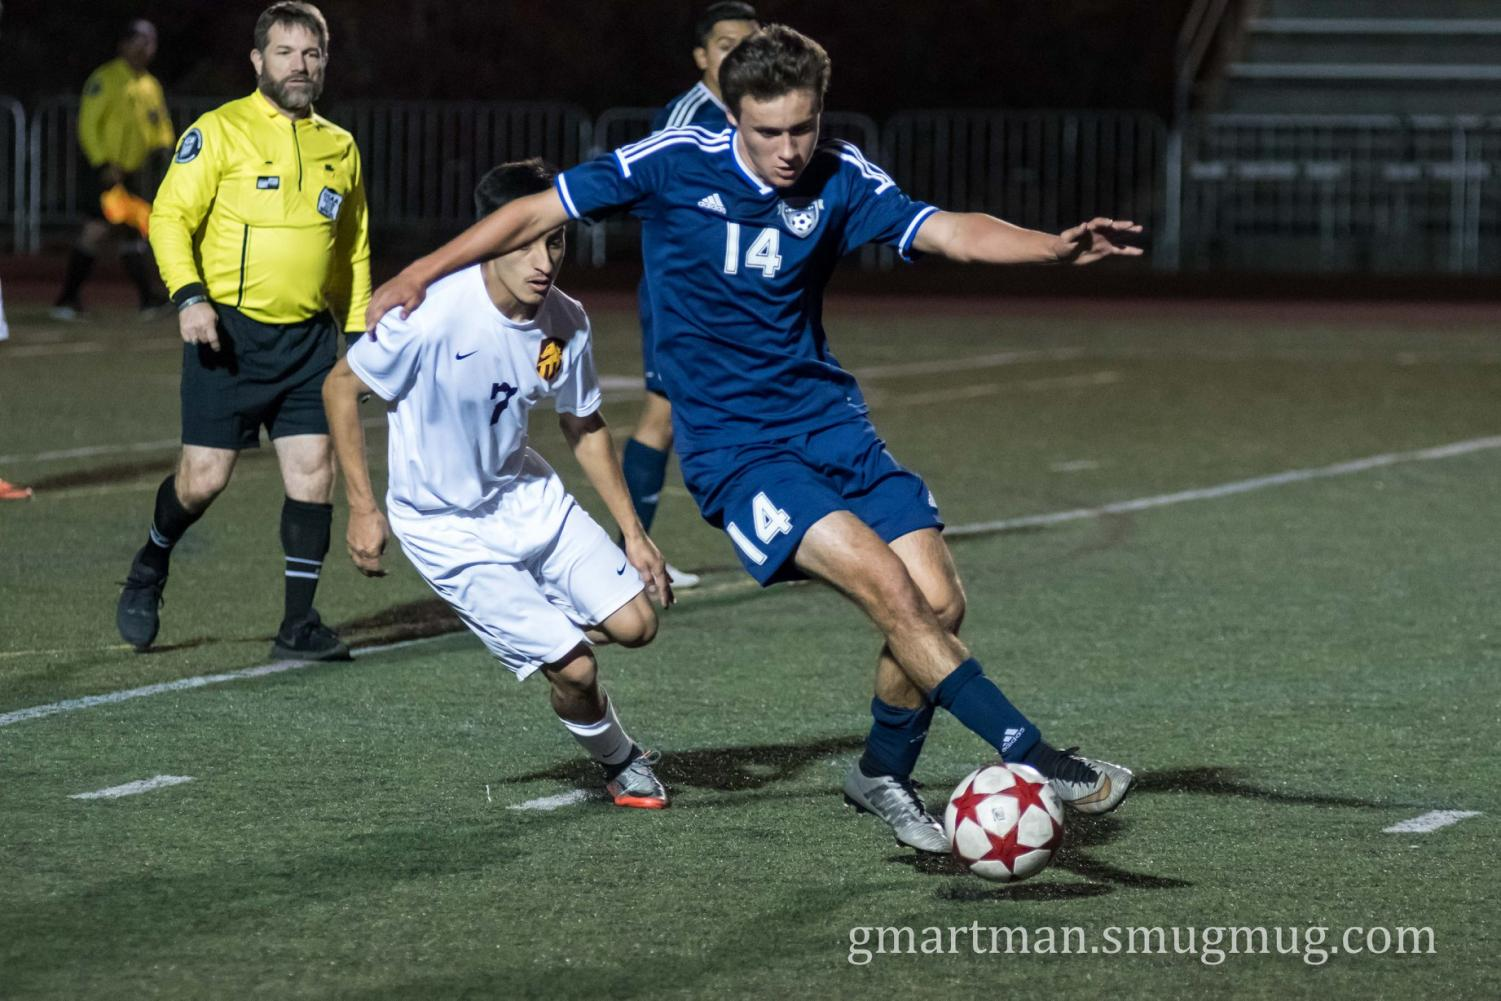 Sam Blohn attacks the ball as the Cats take on the Mustangs.  Blohn scored one of Wilsonville's two goals, but the rally was unsuccessful